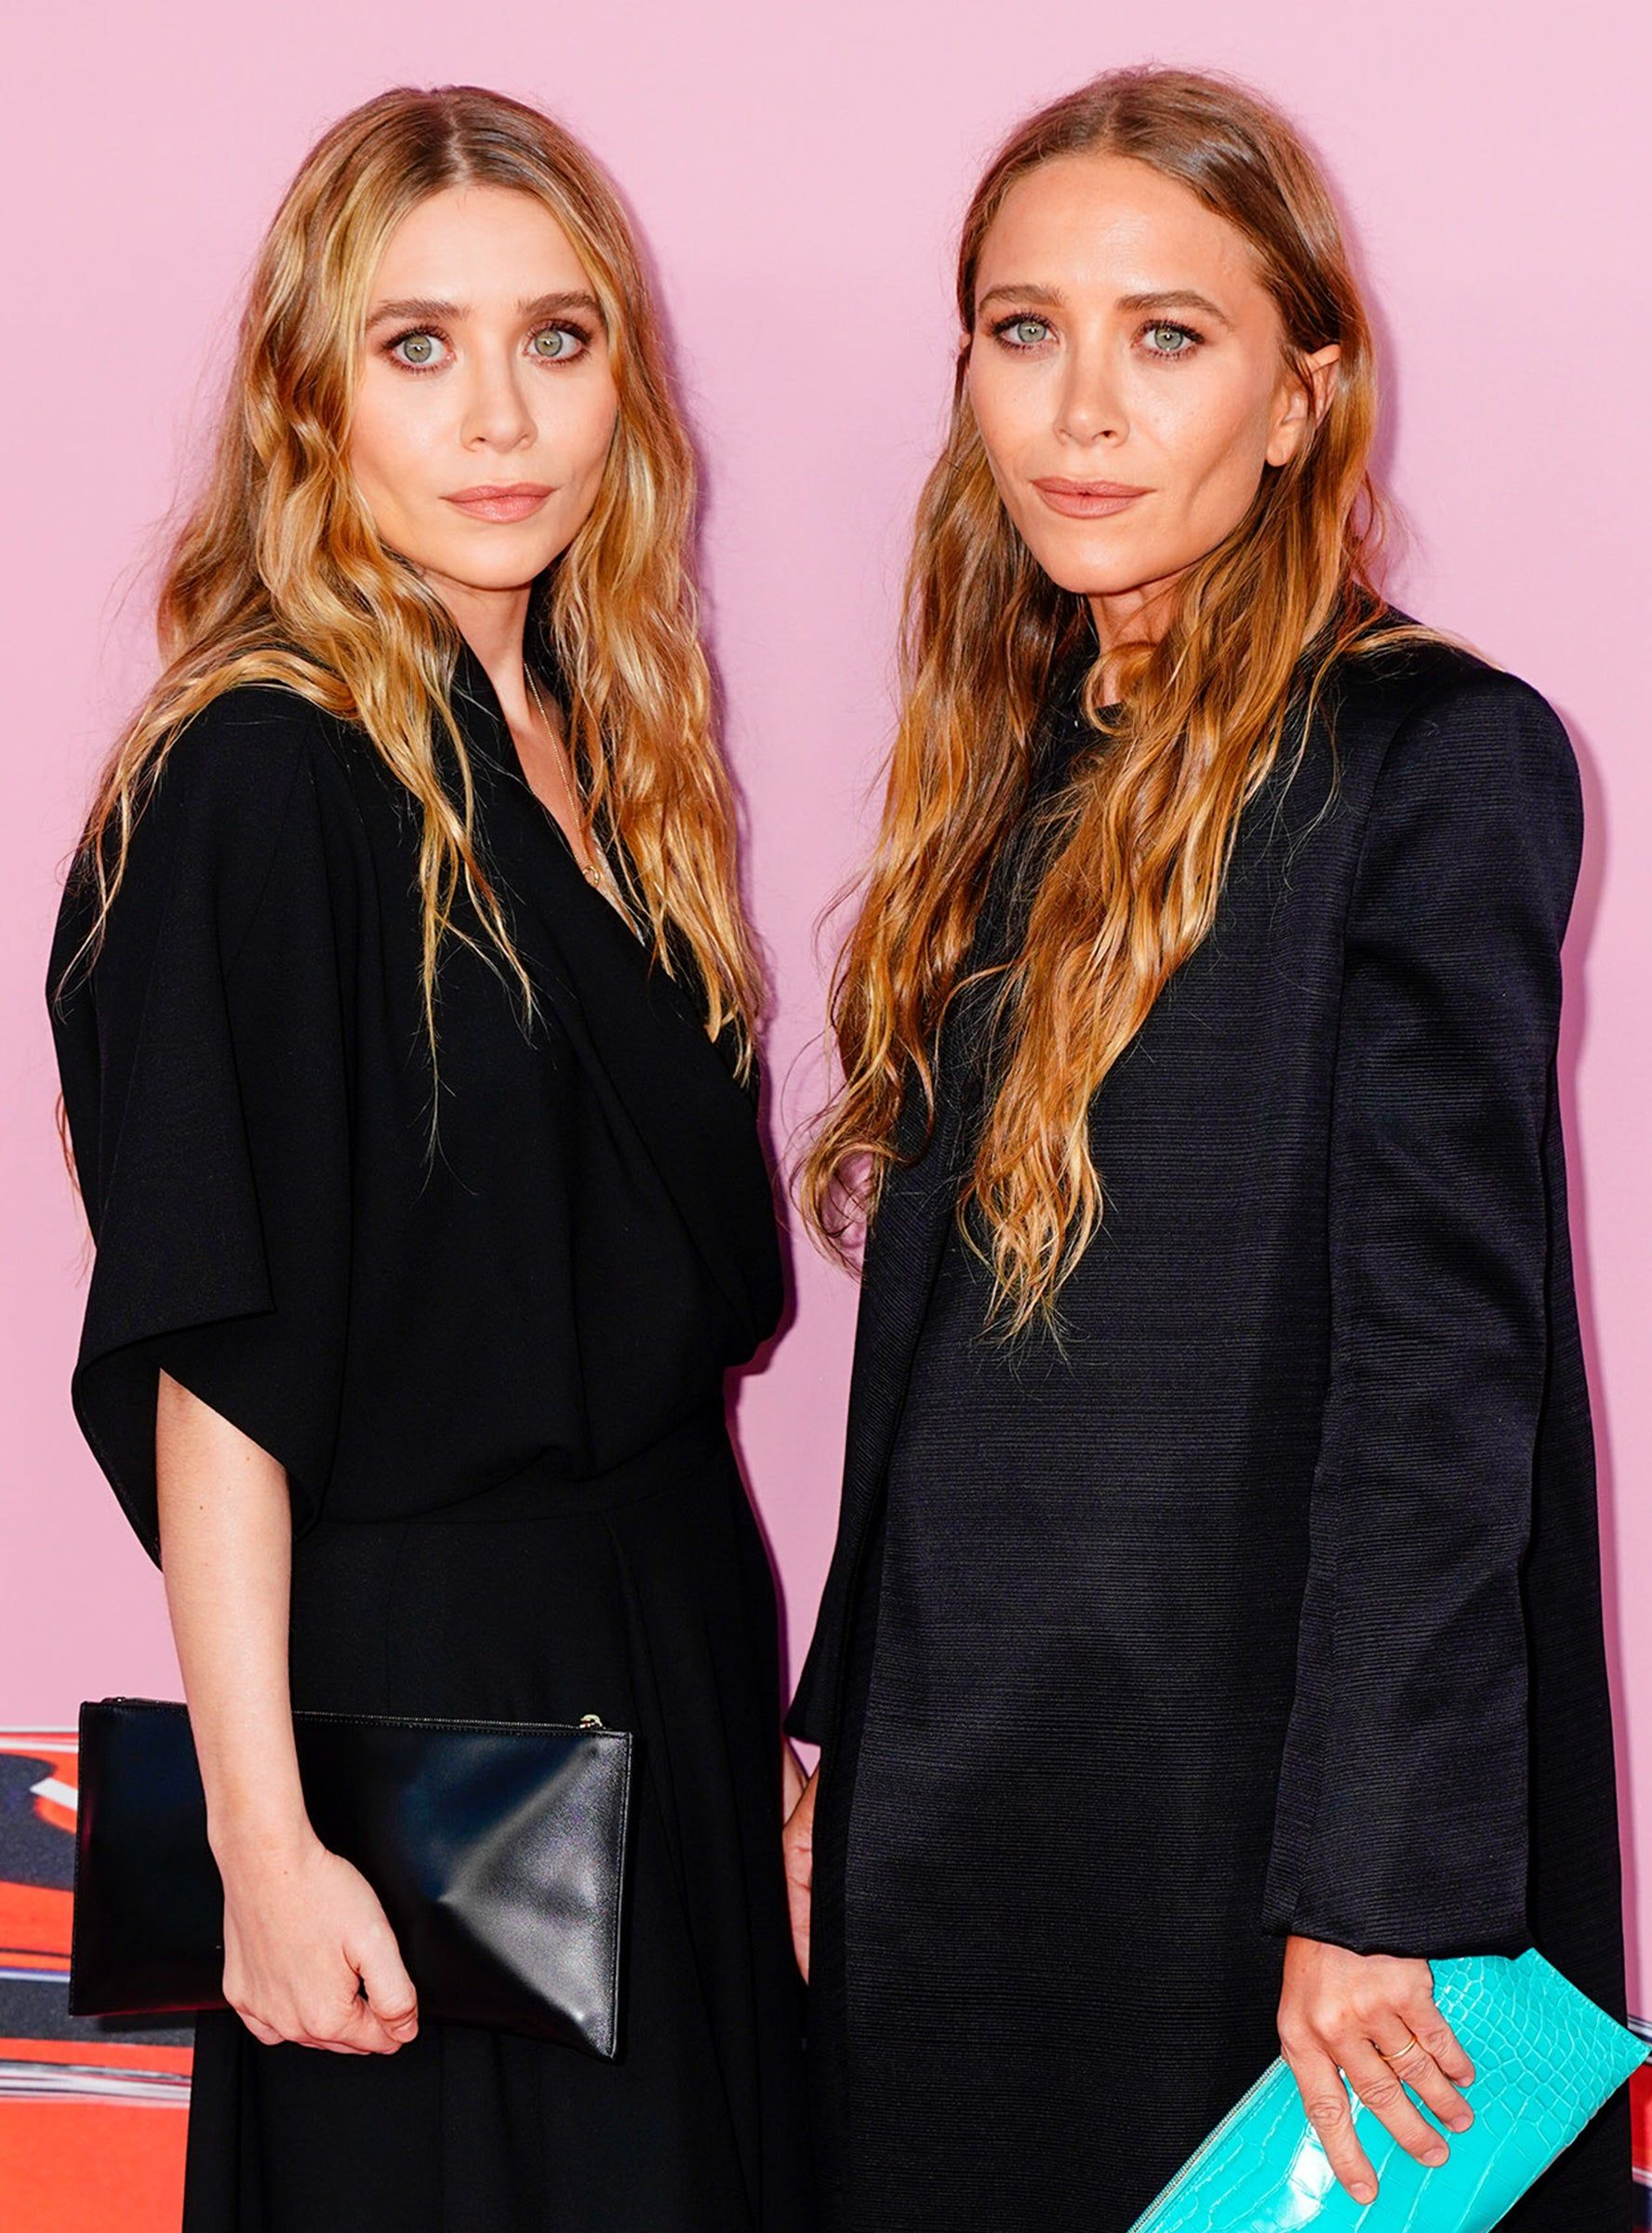 Pretend This Mesmerizing Video Of The Olsen Twins Wishing Ashley Benson Happy Birthday Is For You Celebrity Fashion Outfits Mary Kate Evolution Of Fashion